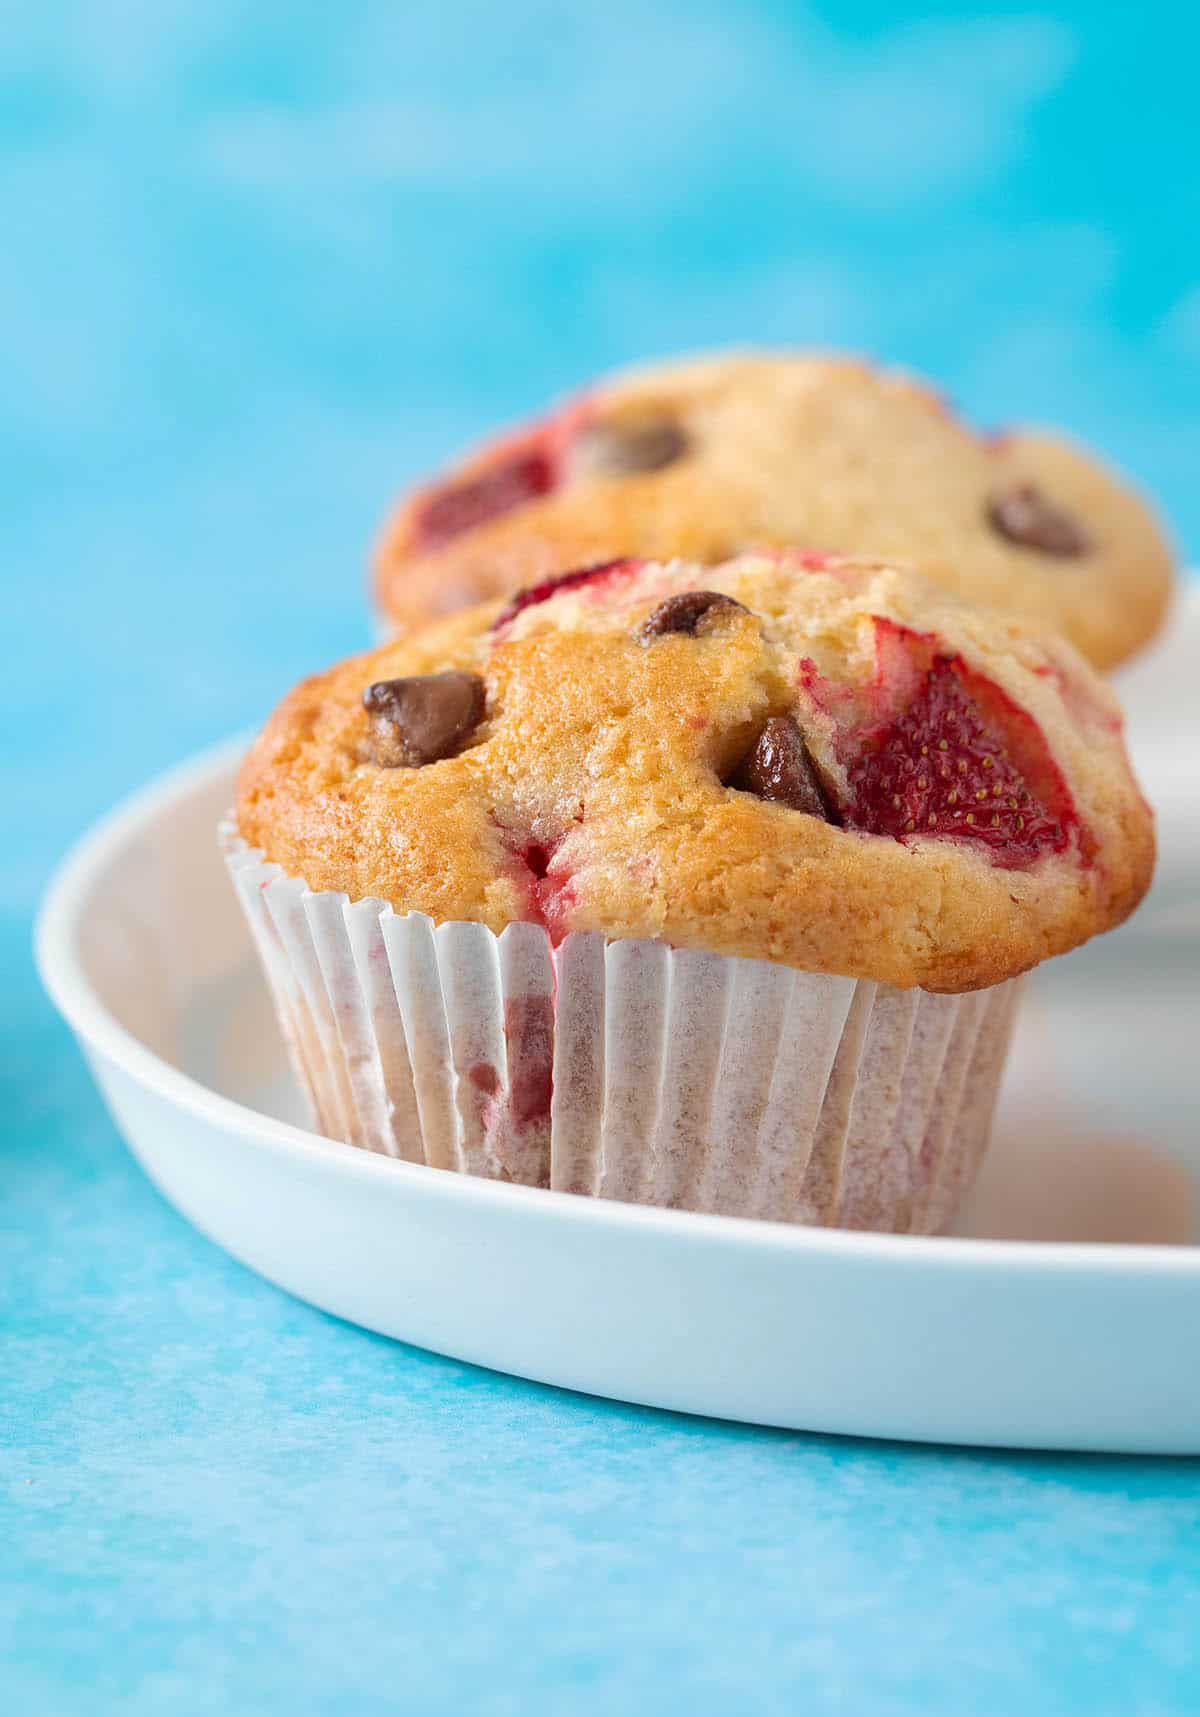 Close up of a freshly baked Strawberry Chocolate Chip Muffin.